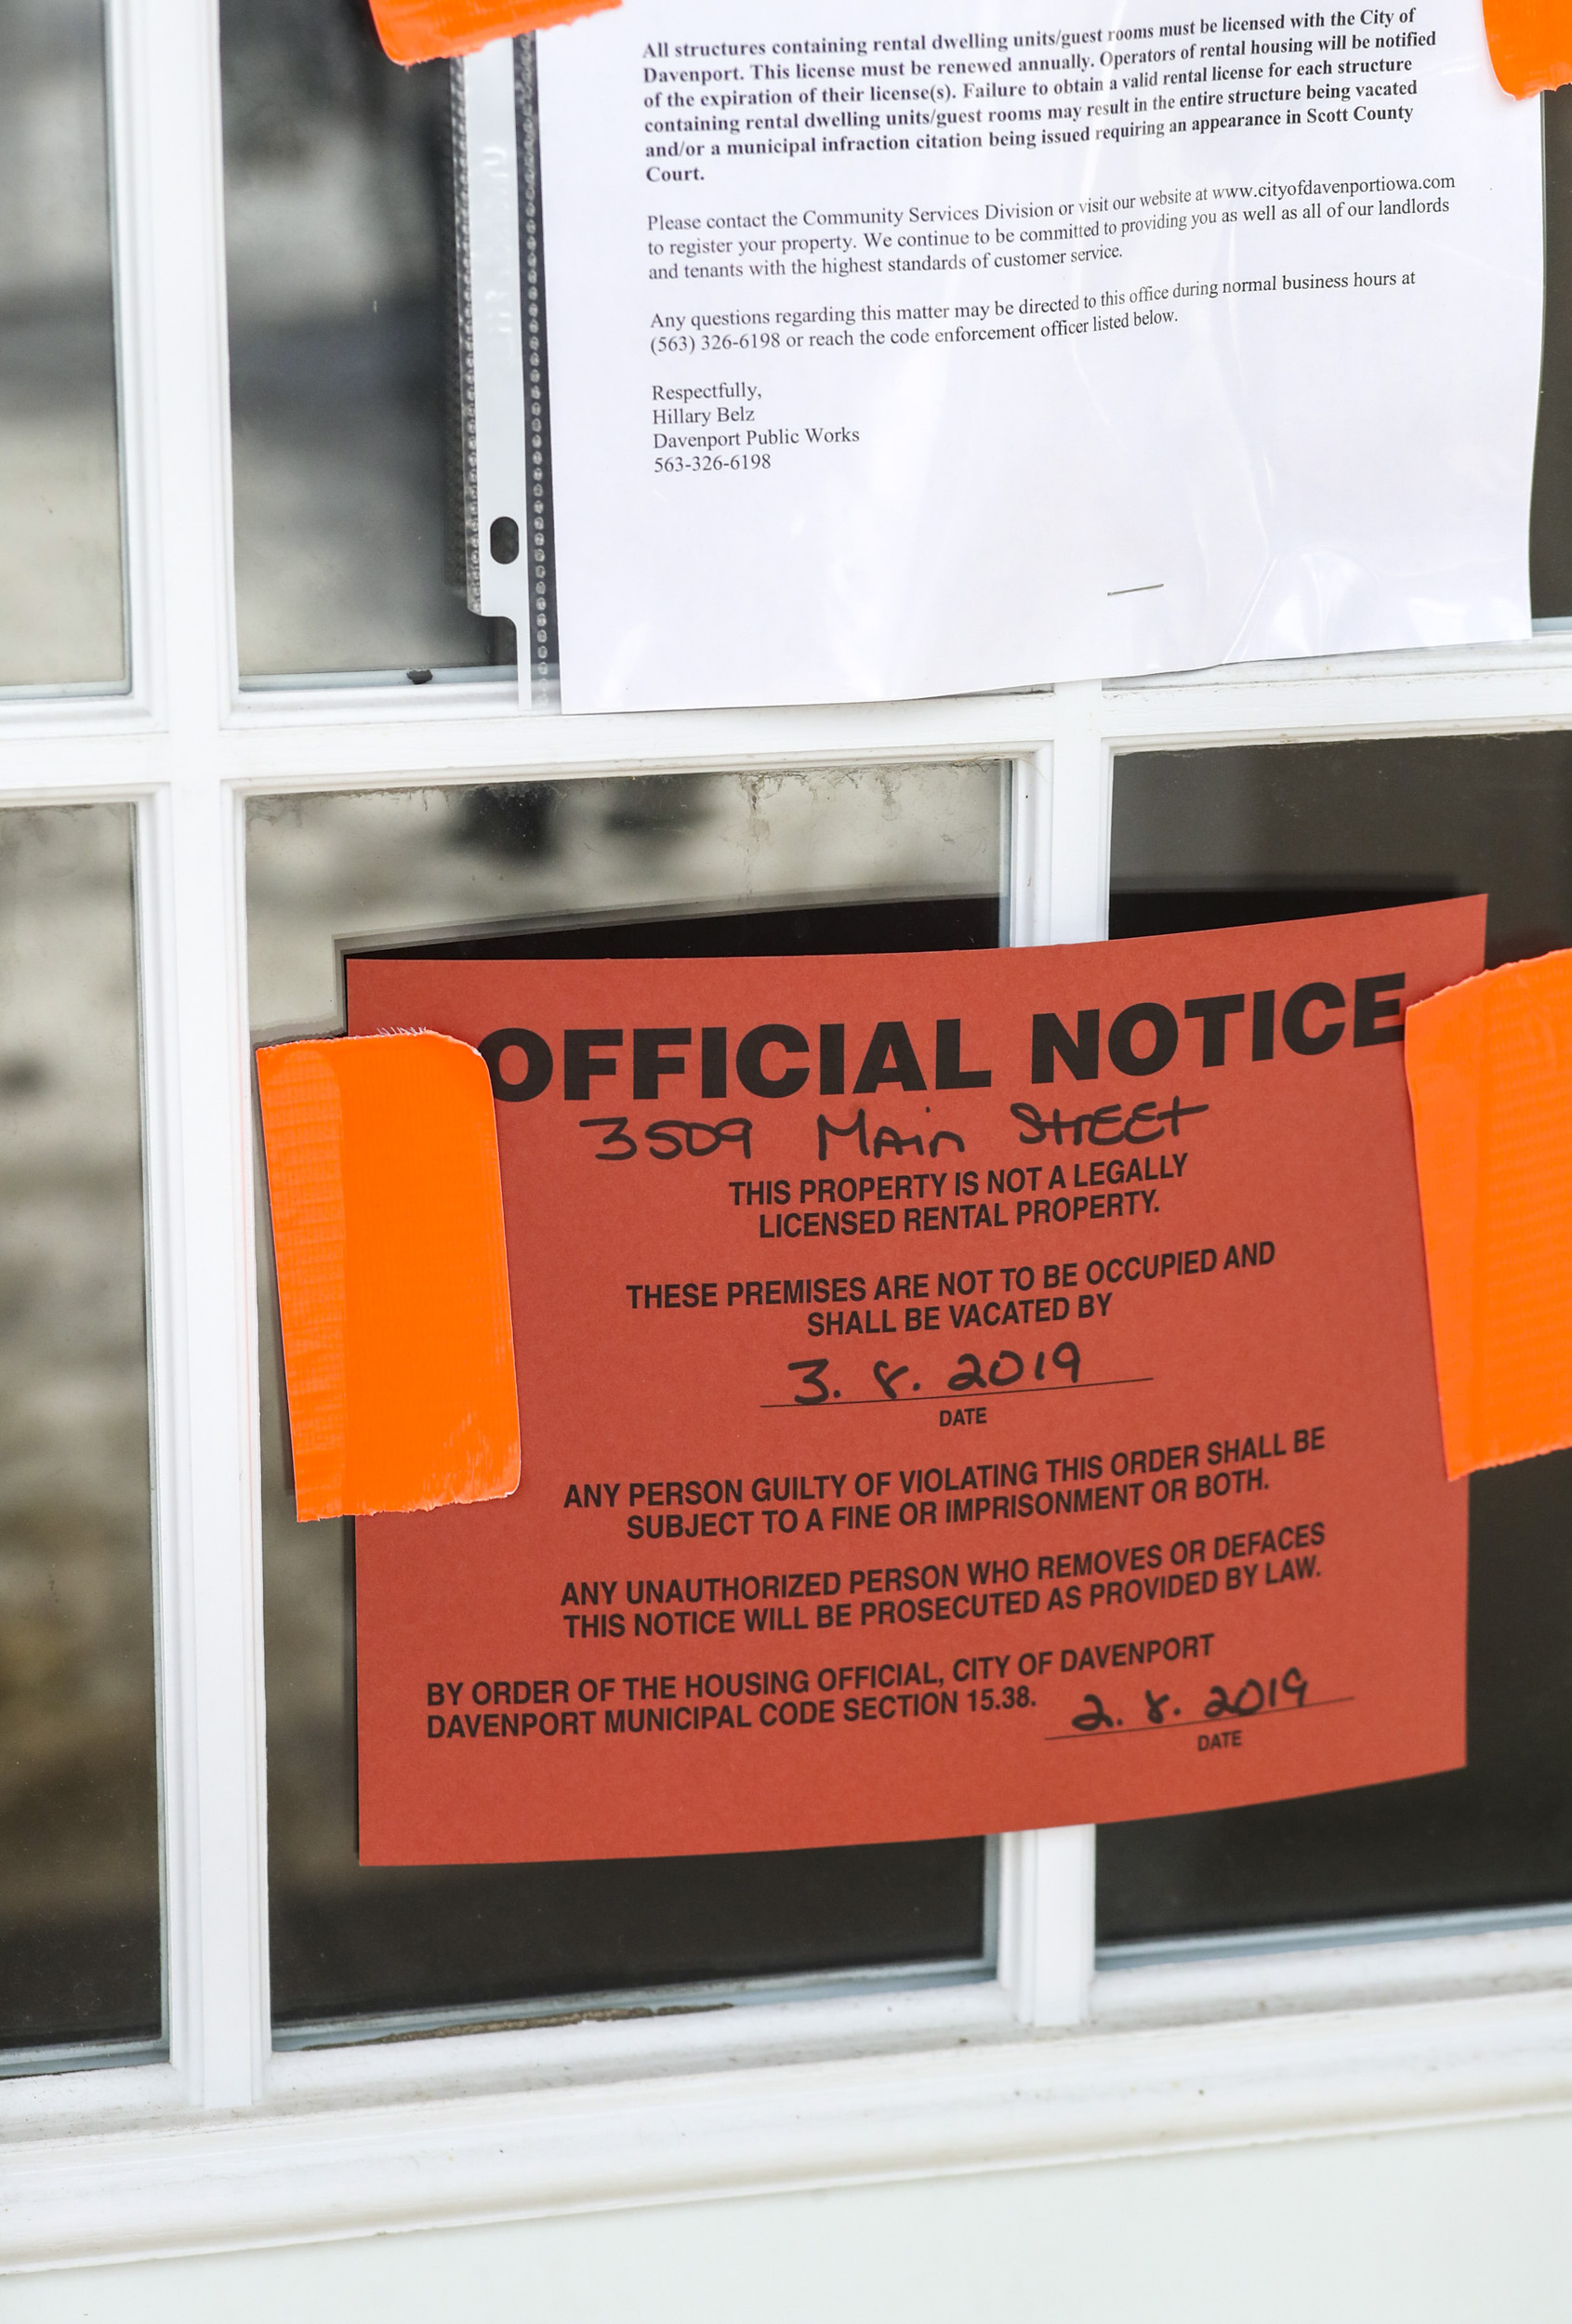 An official vacation notice is seen on the front door of one of the Yorktowne Apartments buildings in Davenport, Wednesday, March 6, 2019.